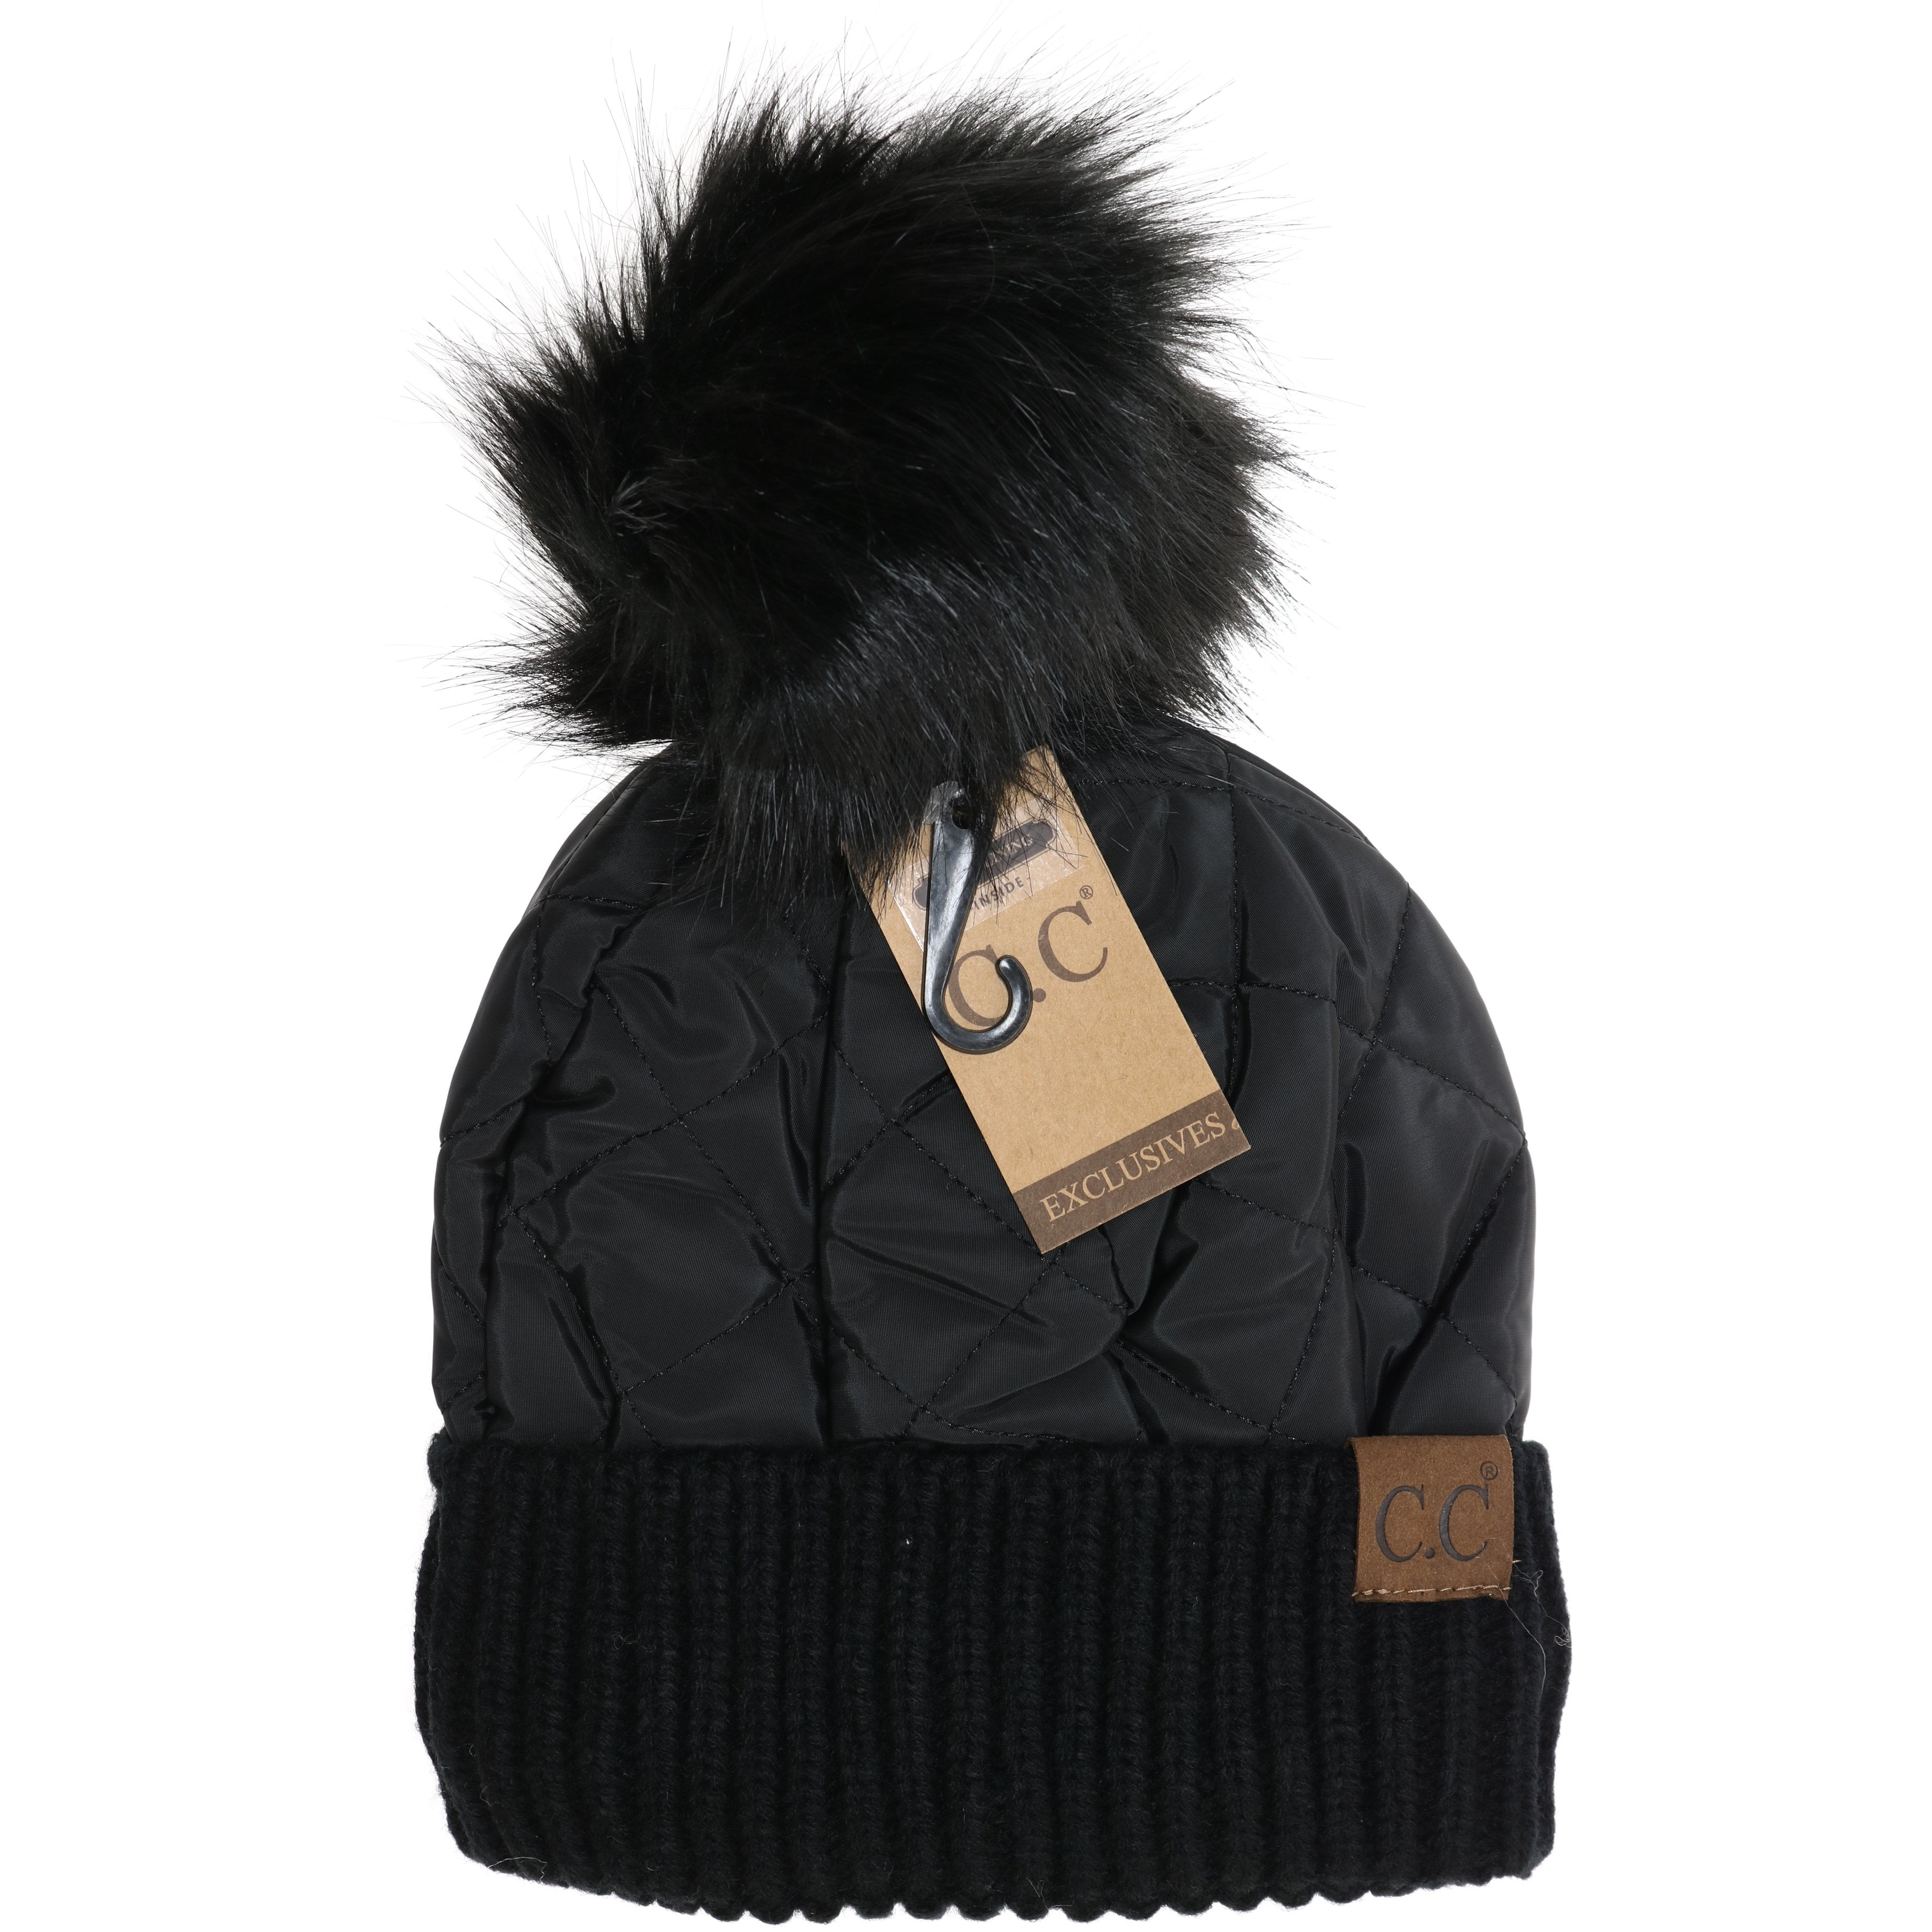 717b2e308 Fleece Lined Quilted Puffer CC Pom Beanie HAT1739